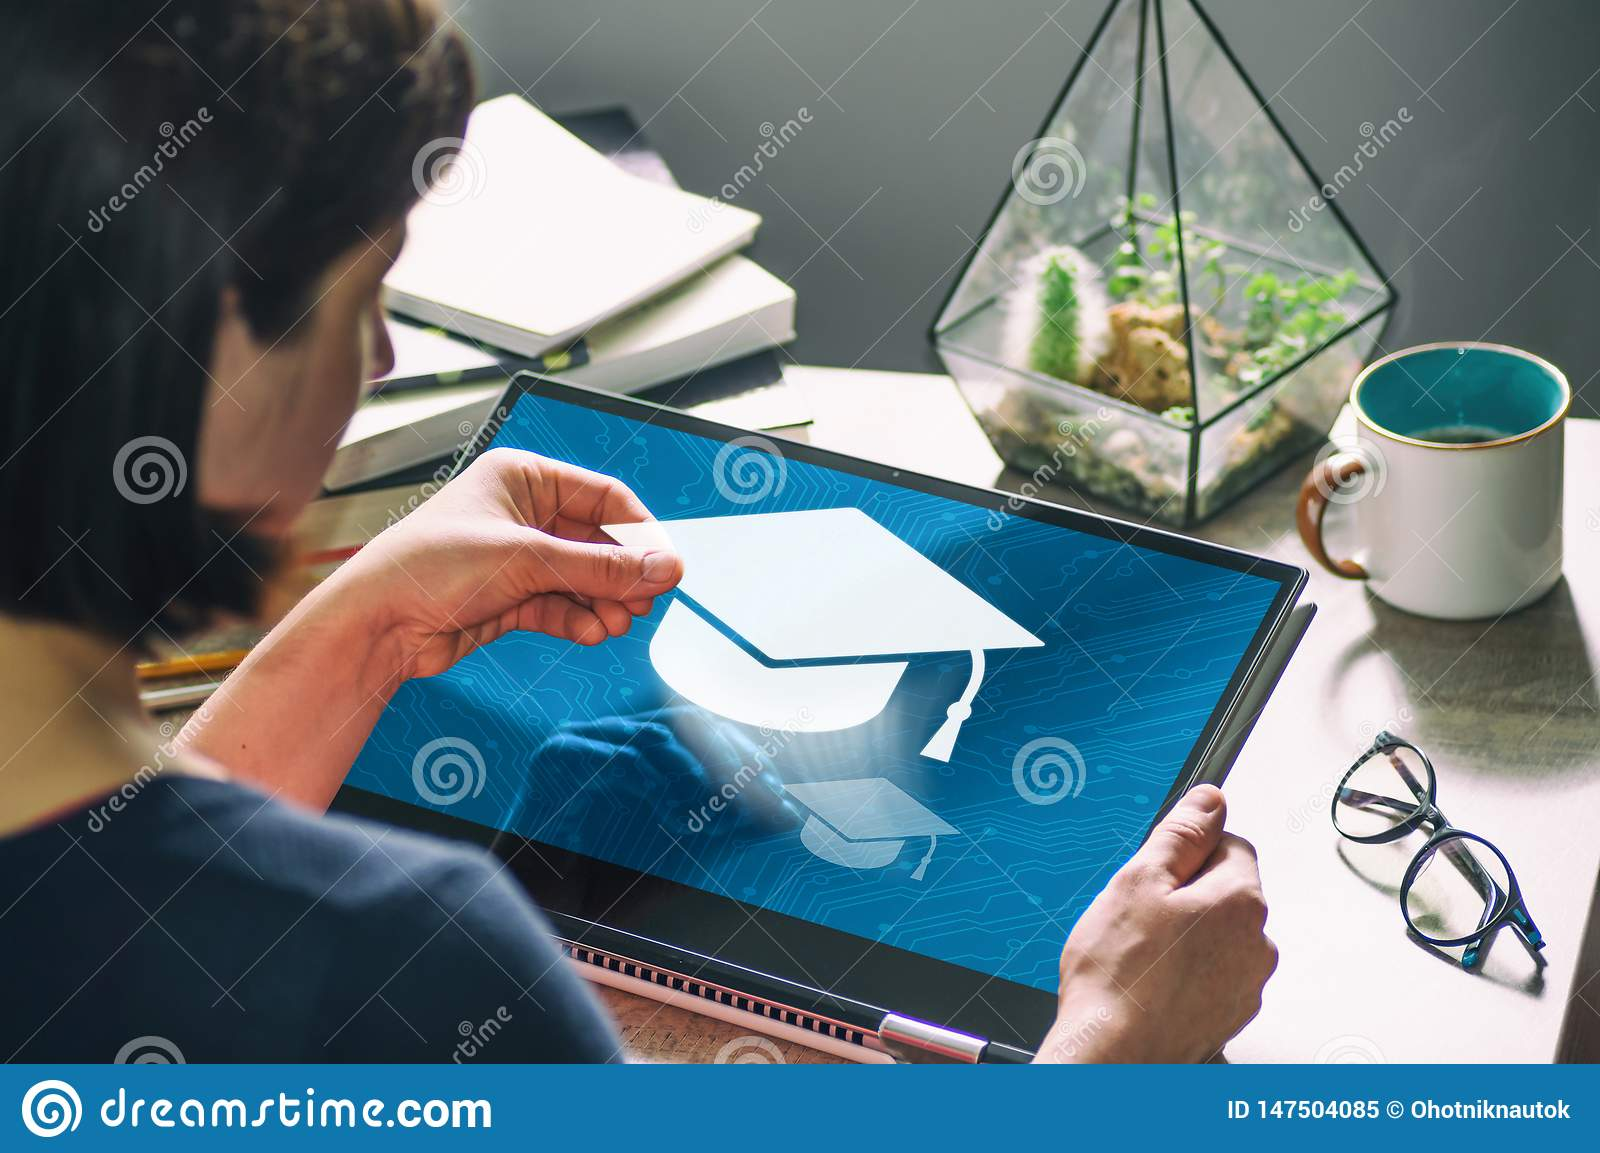 Concept of modern technology in education. Image